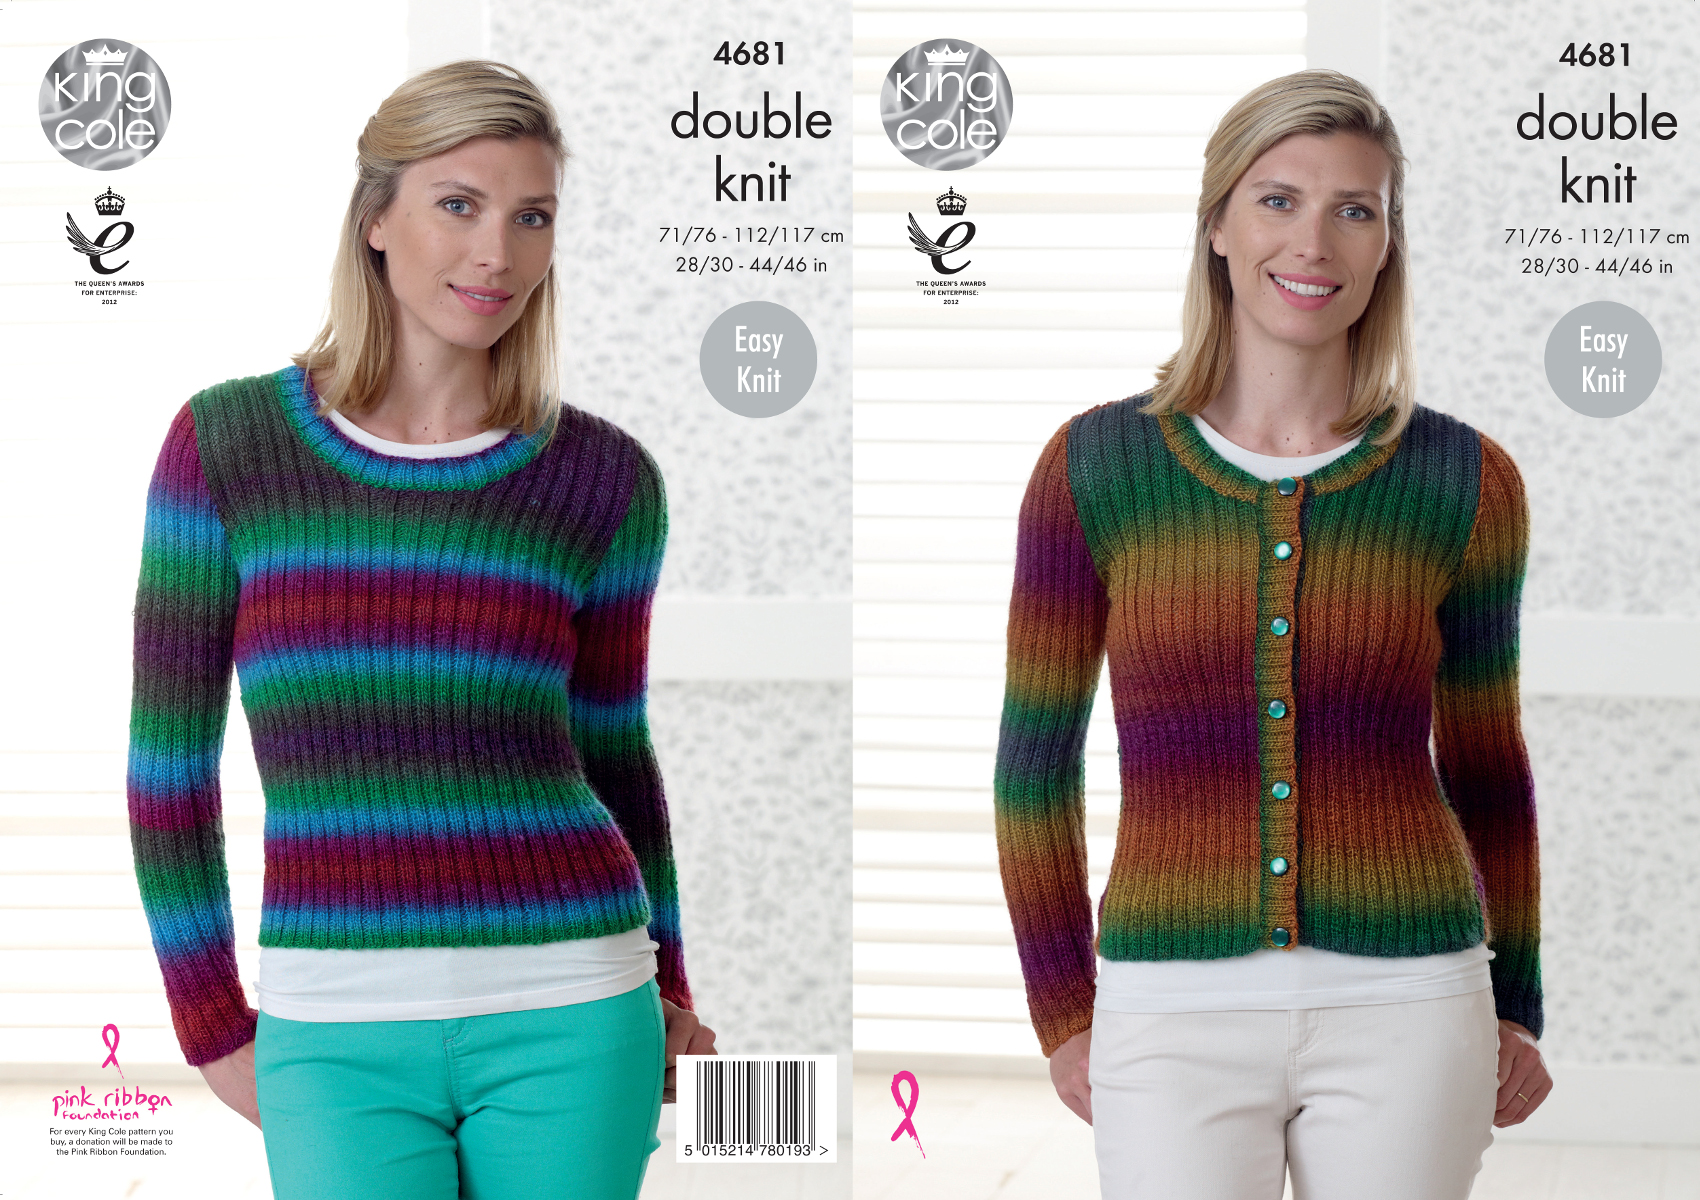 Knitting Patterns Ladies Jumpers Double Knit : Easy Knit Double Knitting Pattern Womens Ribbed Cardigan Jumper King Cole 468...